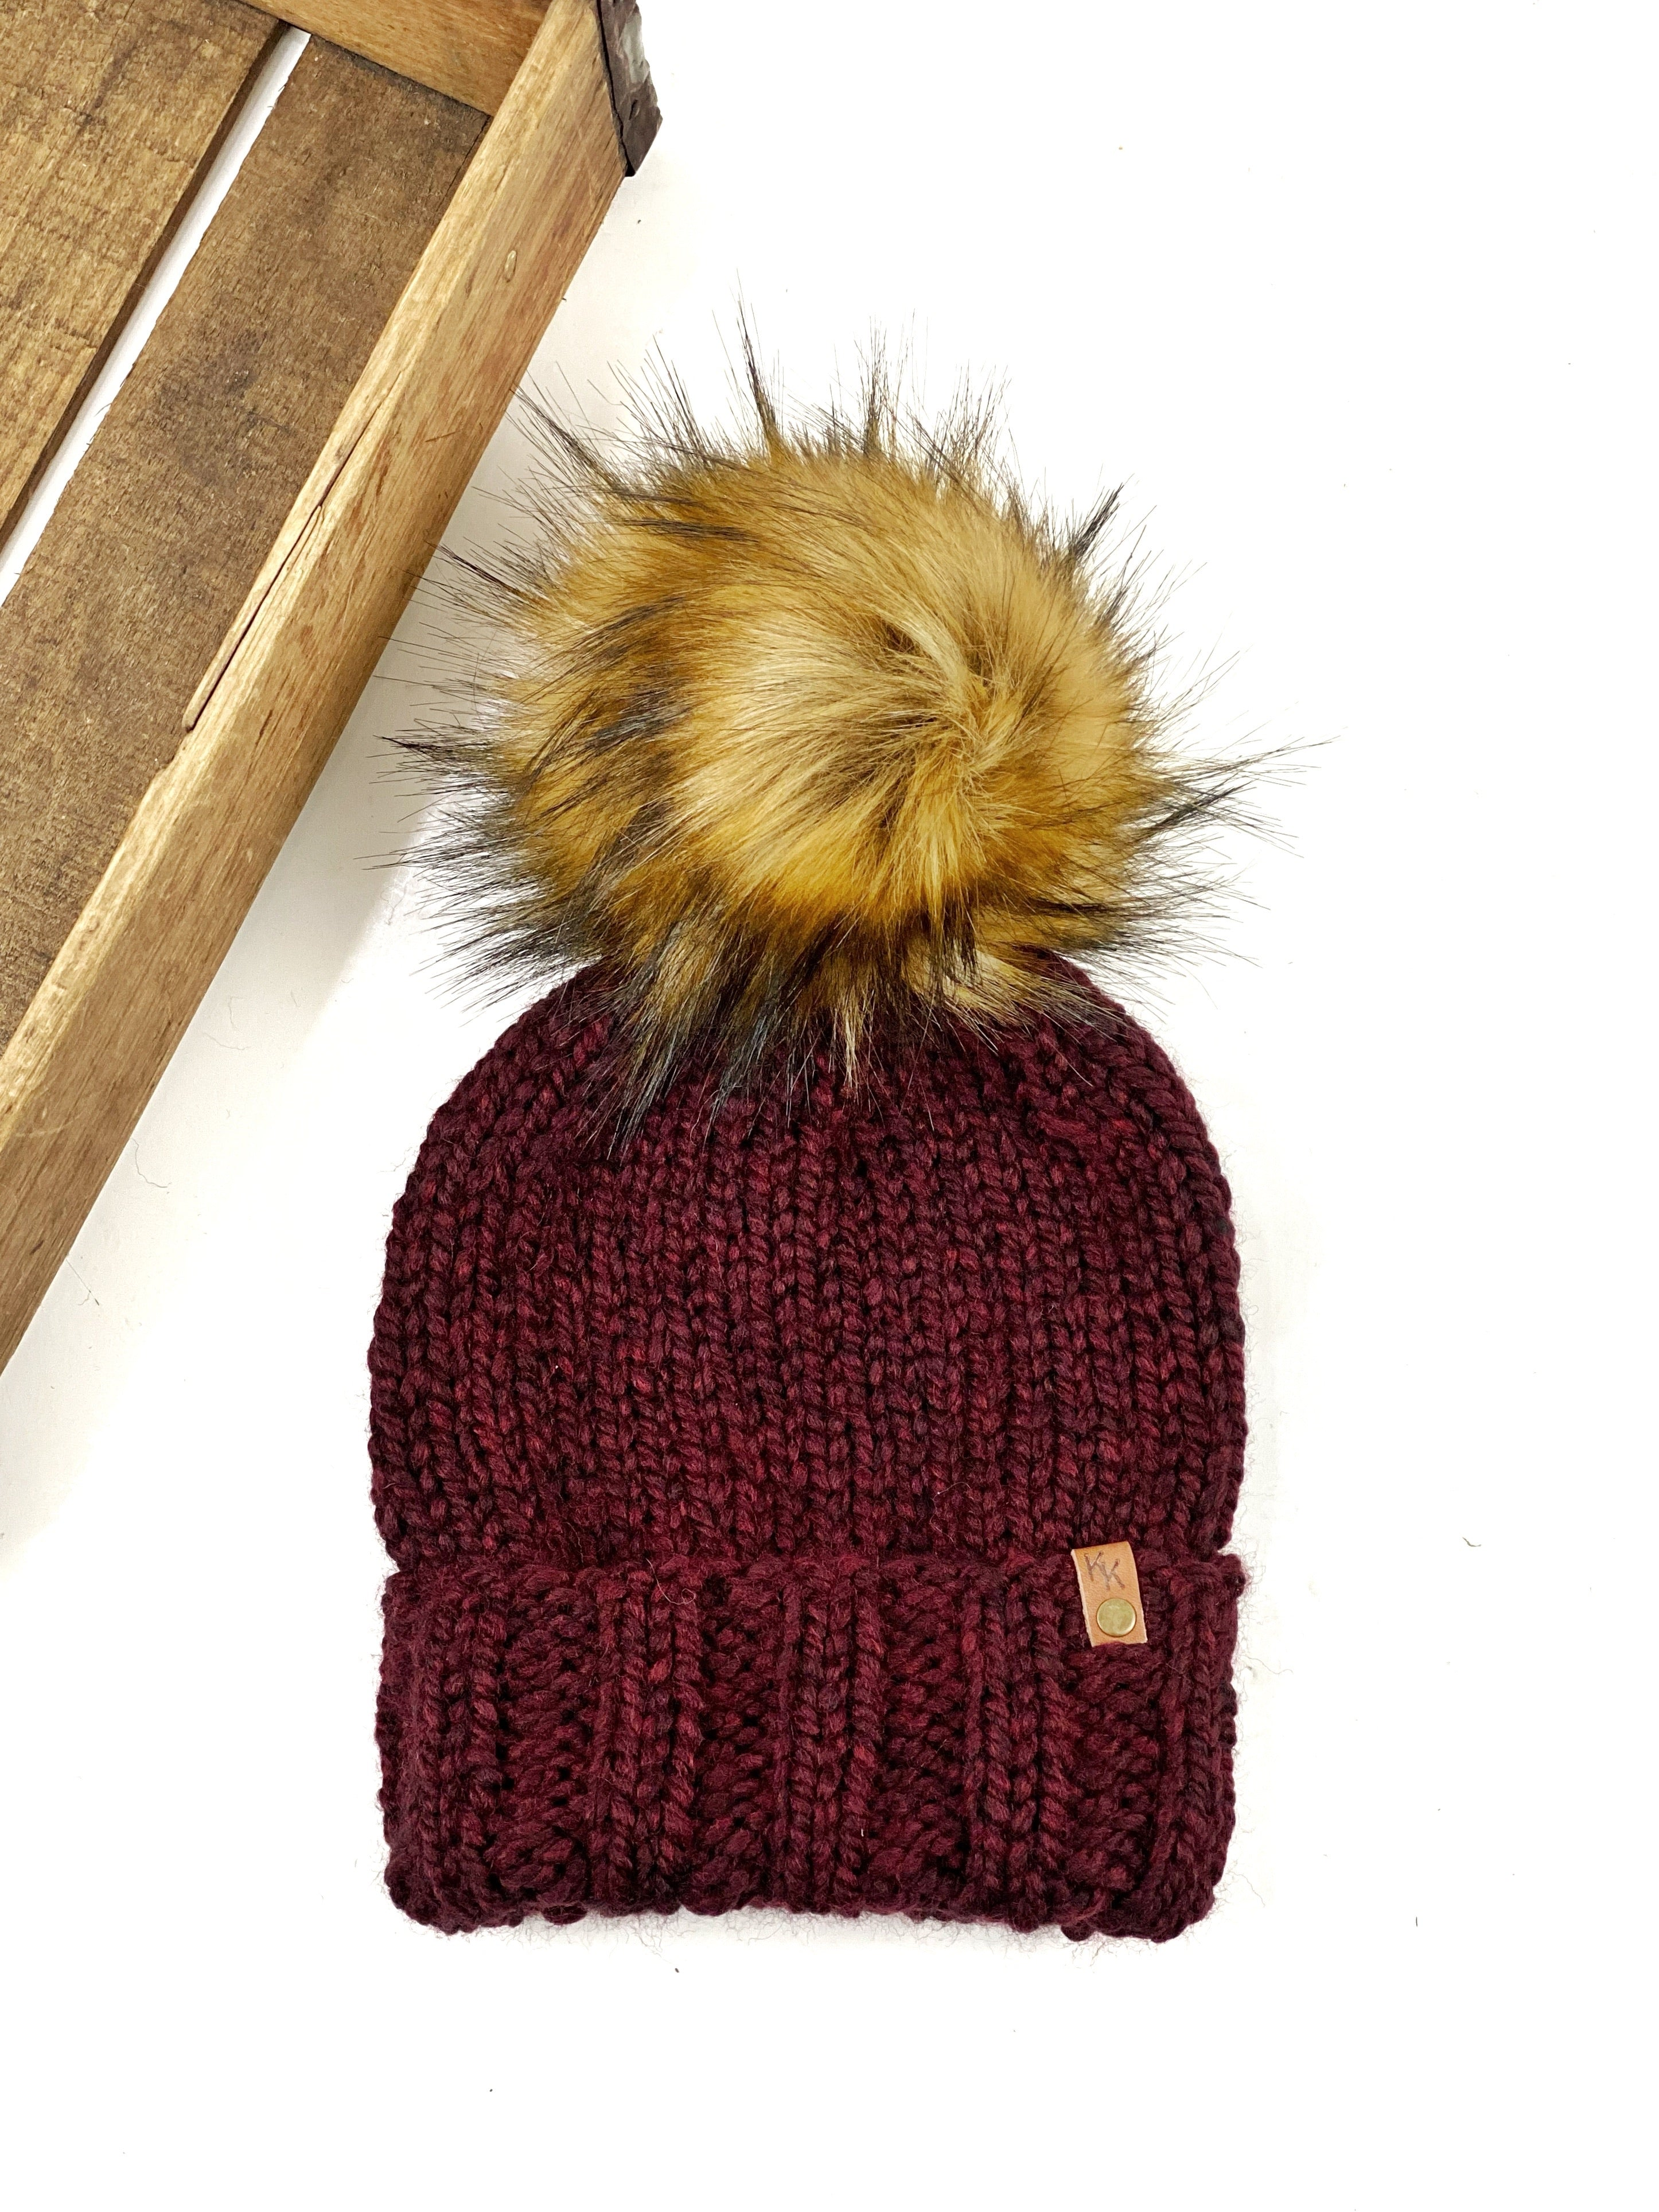 Sophie's Hat Womens Adult Folded Brim Beanie  Wool Blend Tamarin Faux Fur Pom